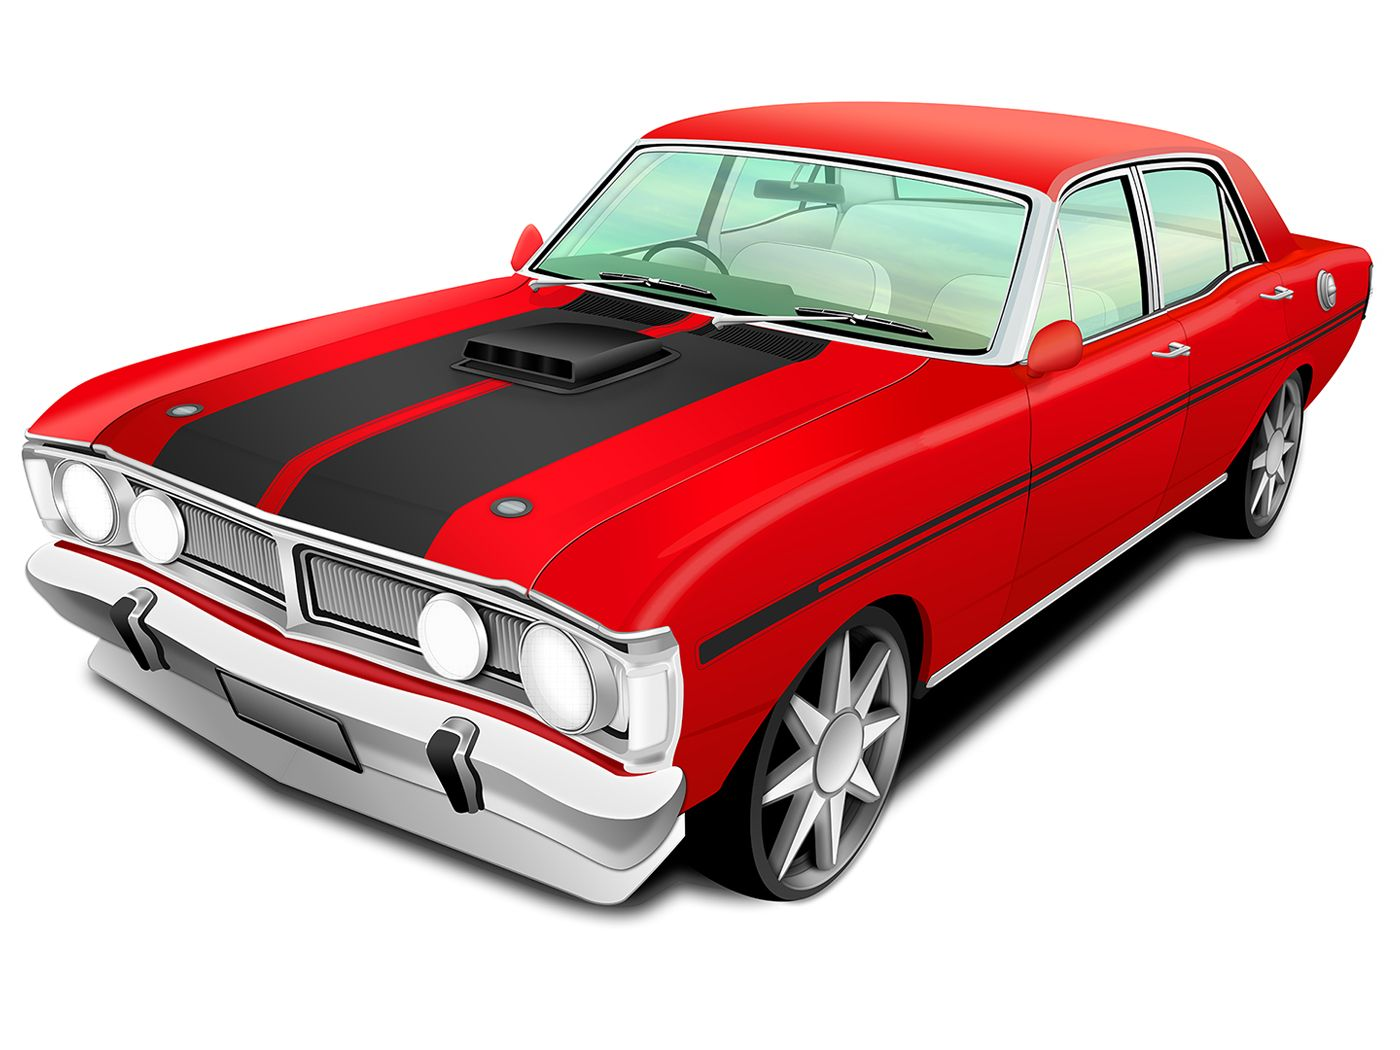 Falcon Xy Gt Falcon Xy Gt Shakers Pinterest Falcons And Ford